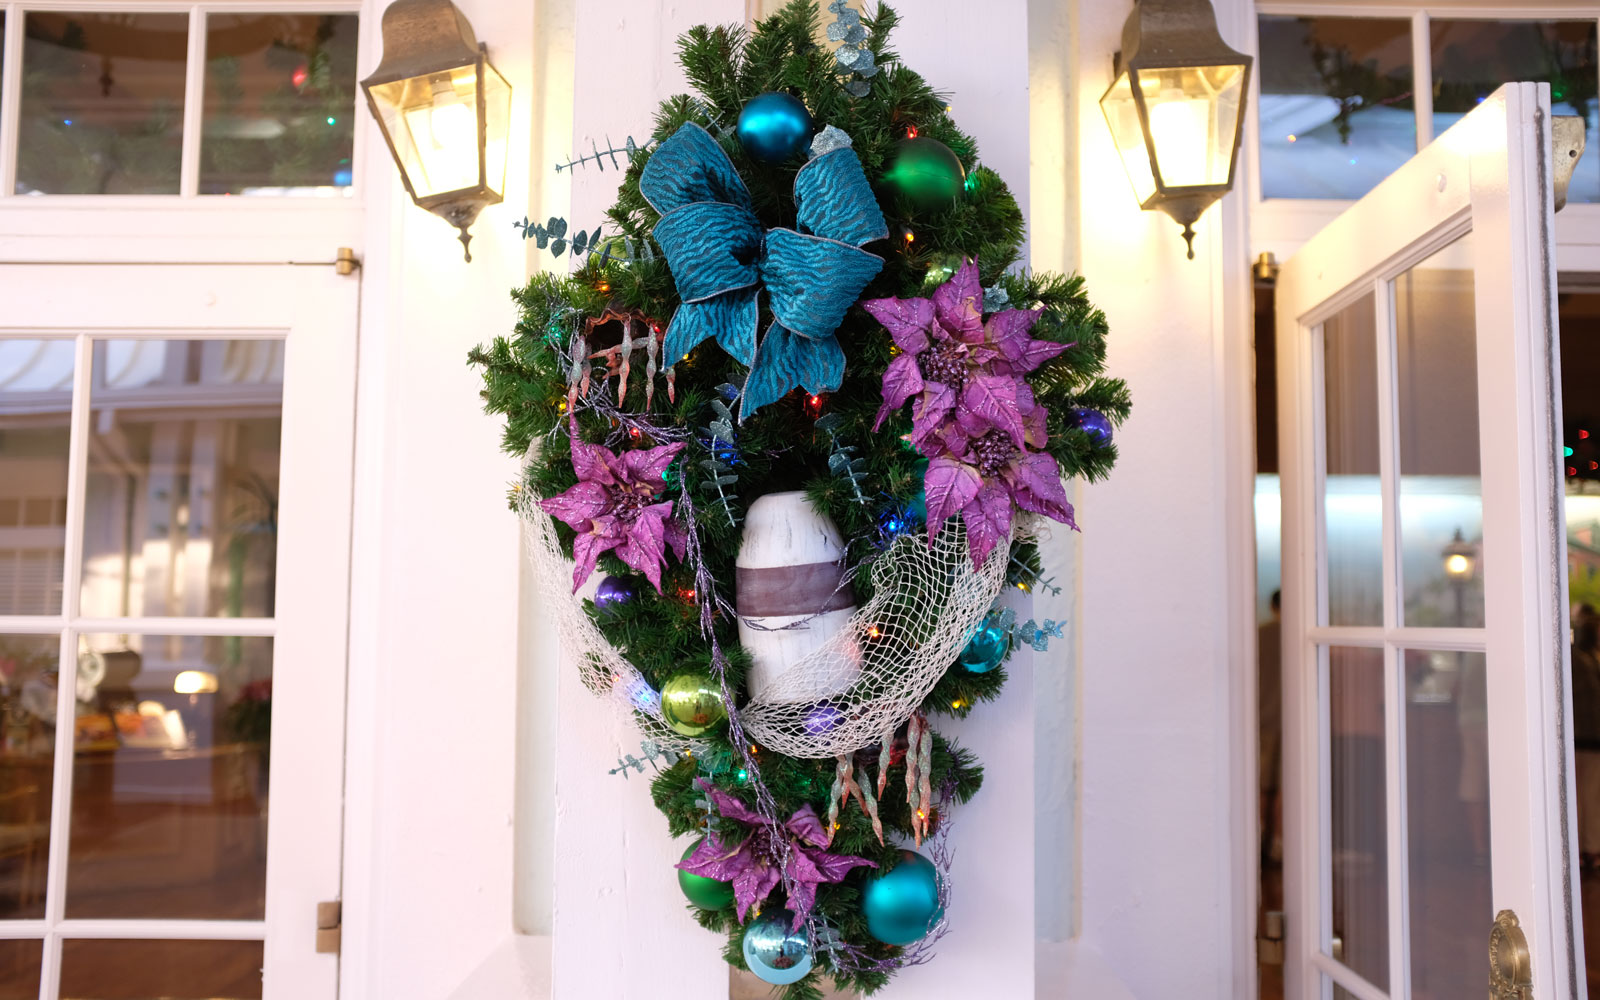 Old Key West hotel wreaths